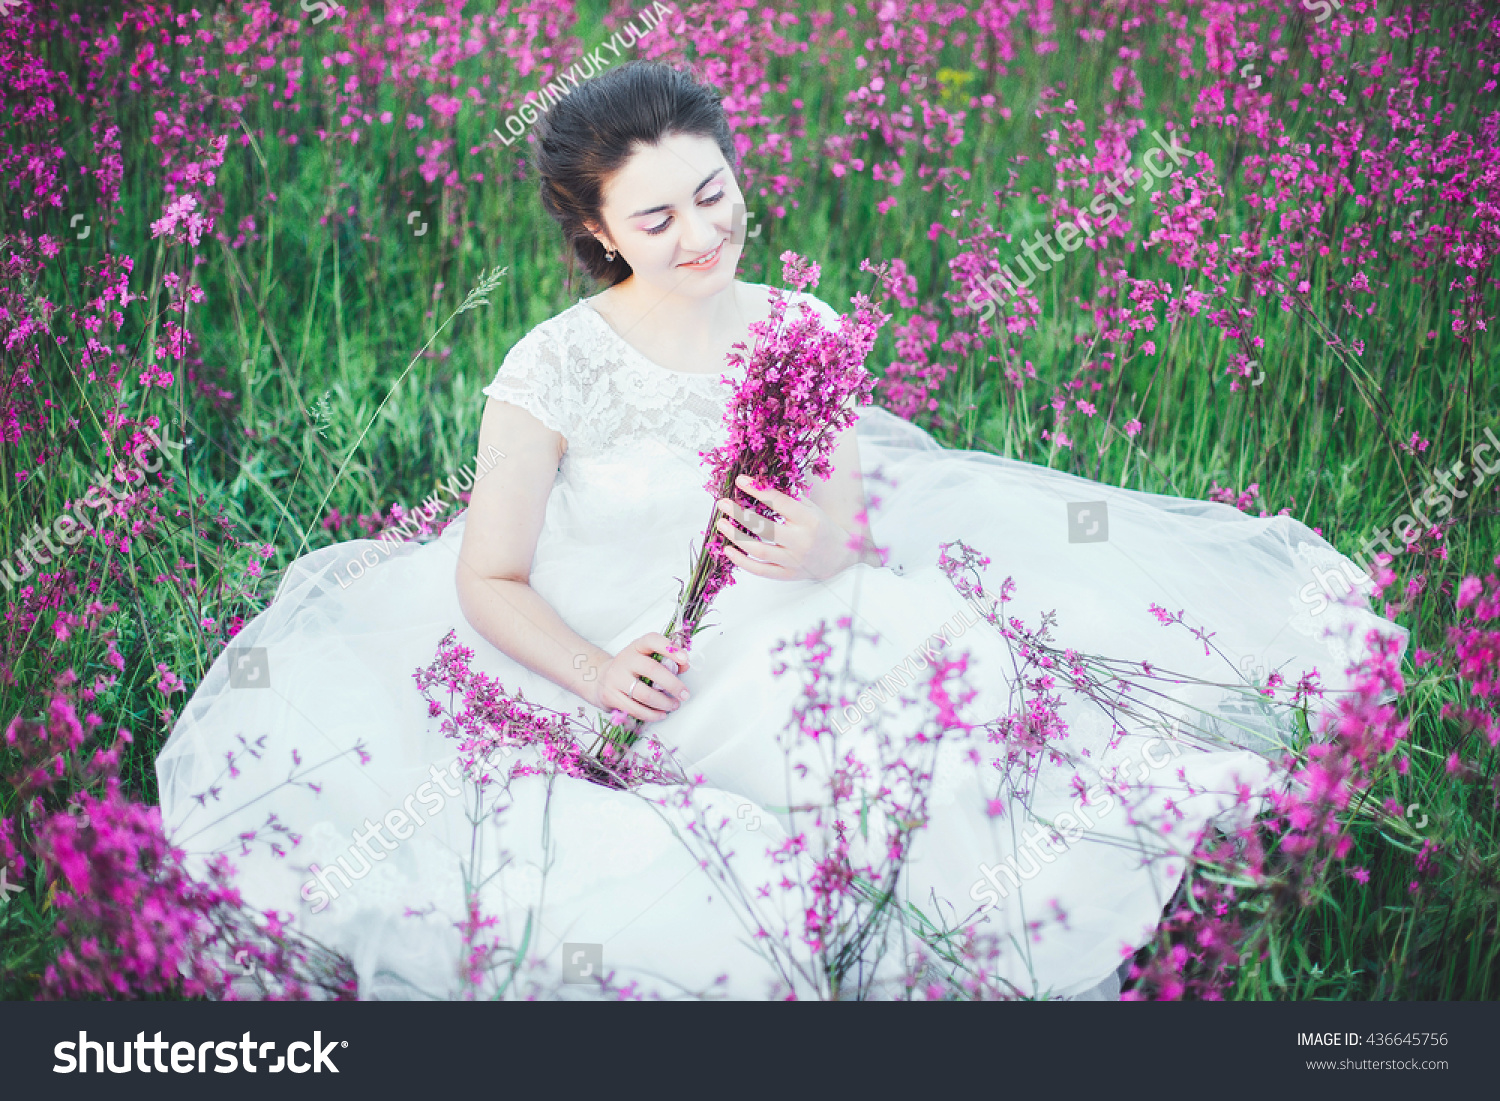 Beautiful Bride Flower Field Girl White Stock Photo Safe To Use